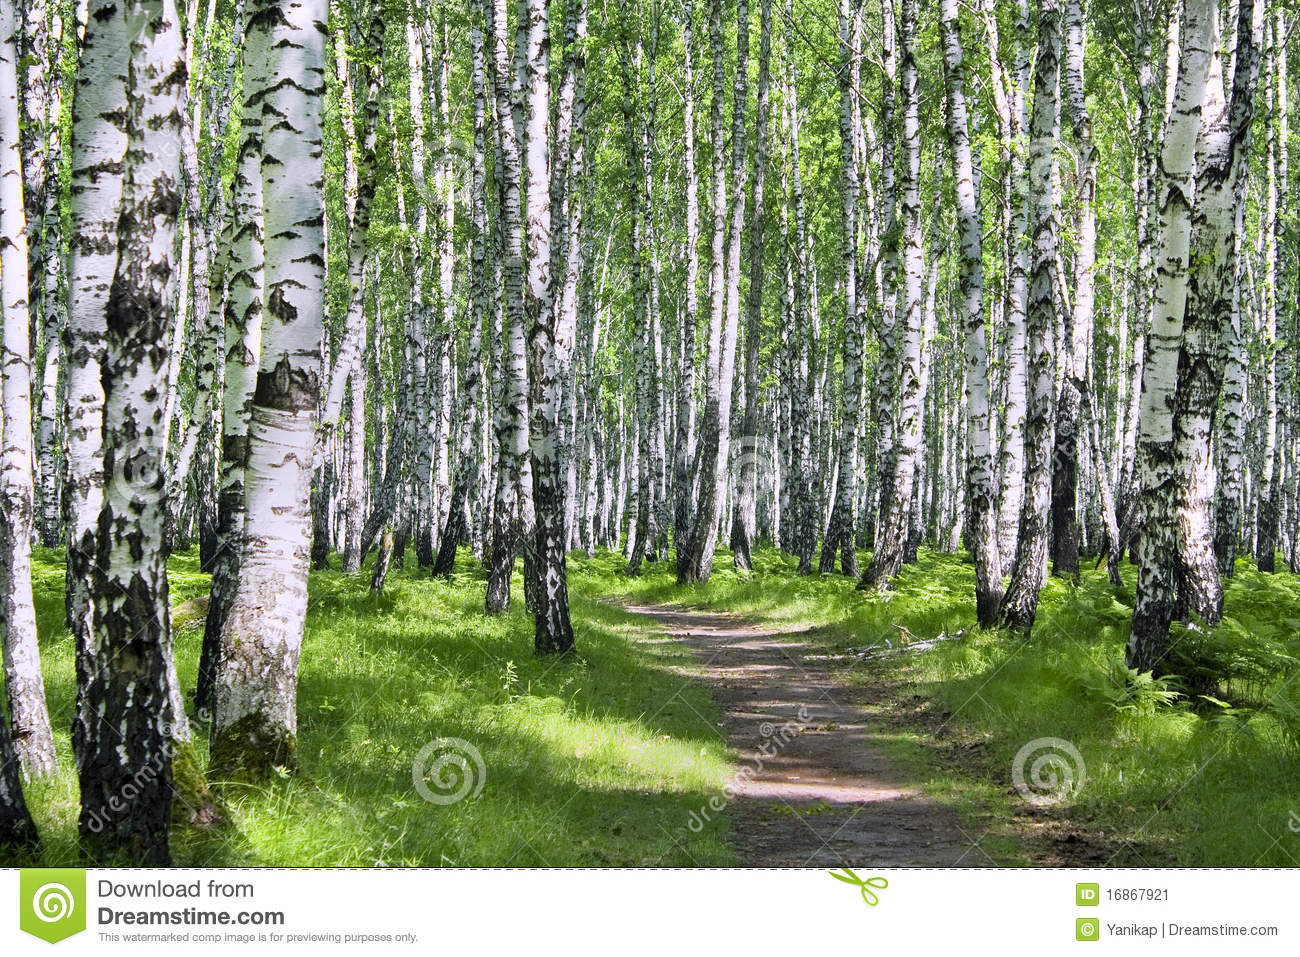 Birch wood stock image. Image of lush, rural, landscaped ...